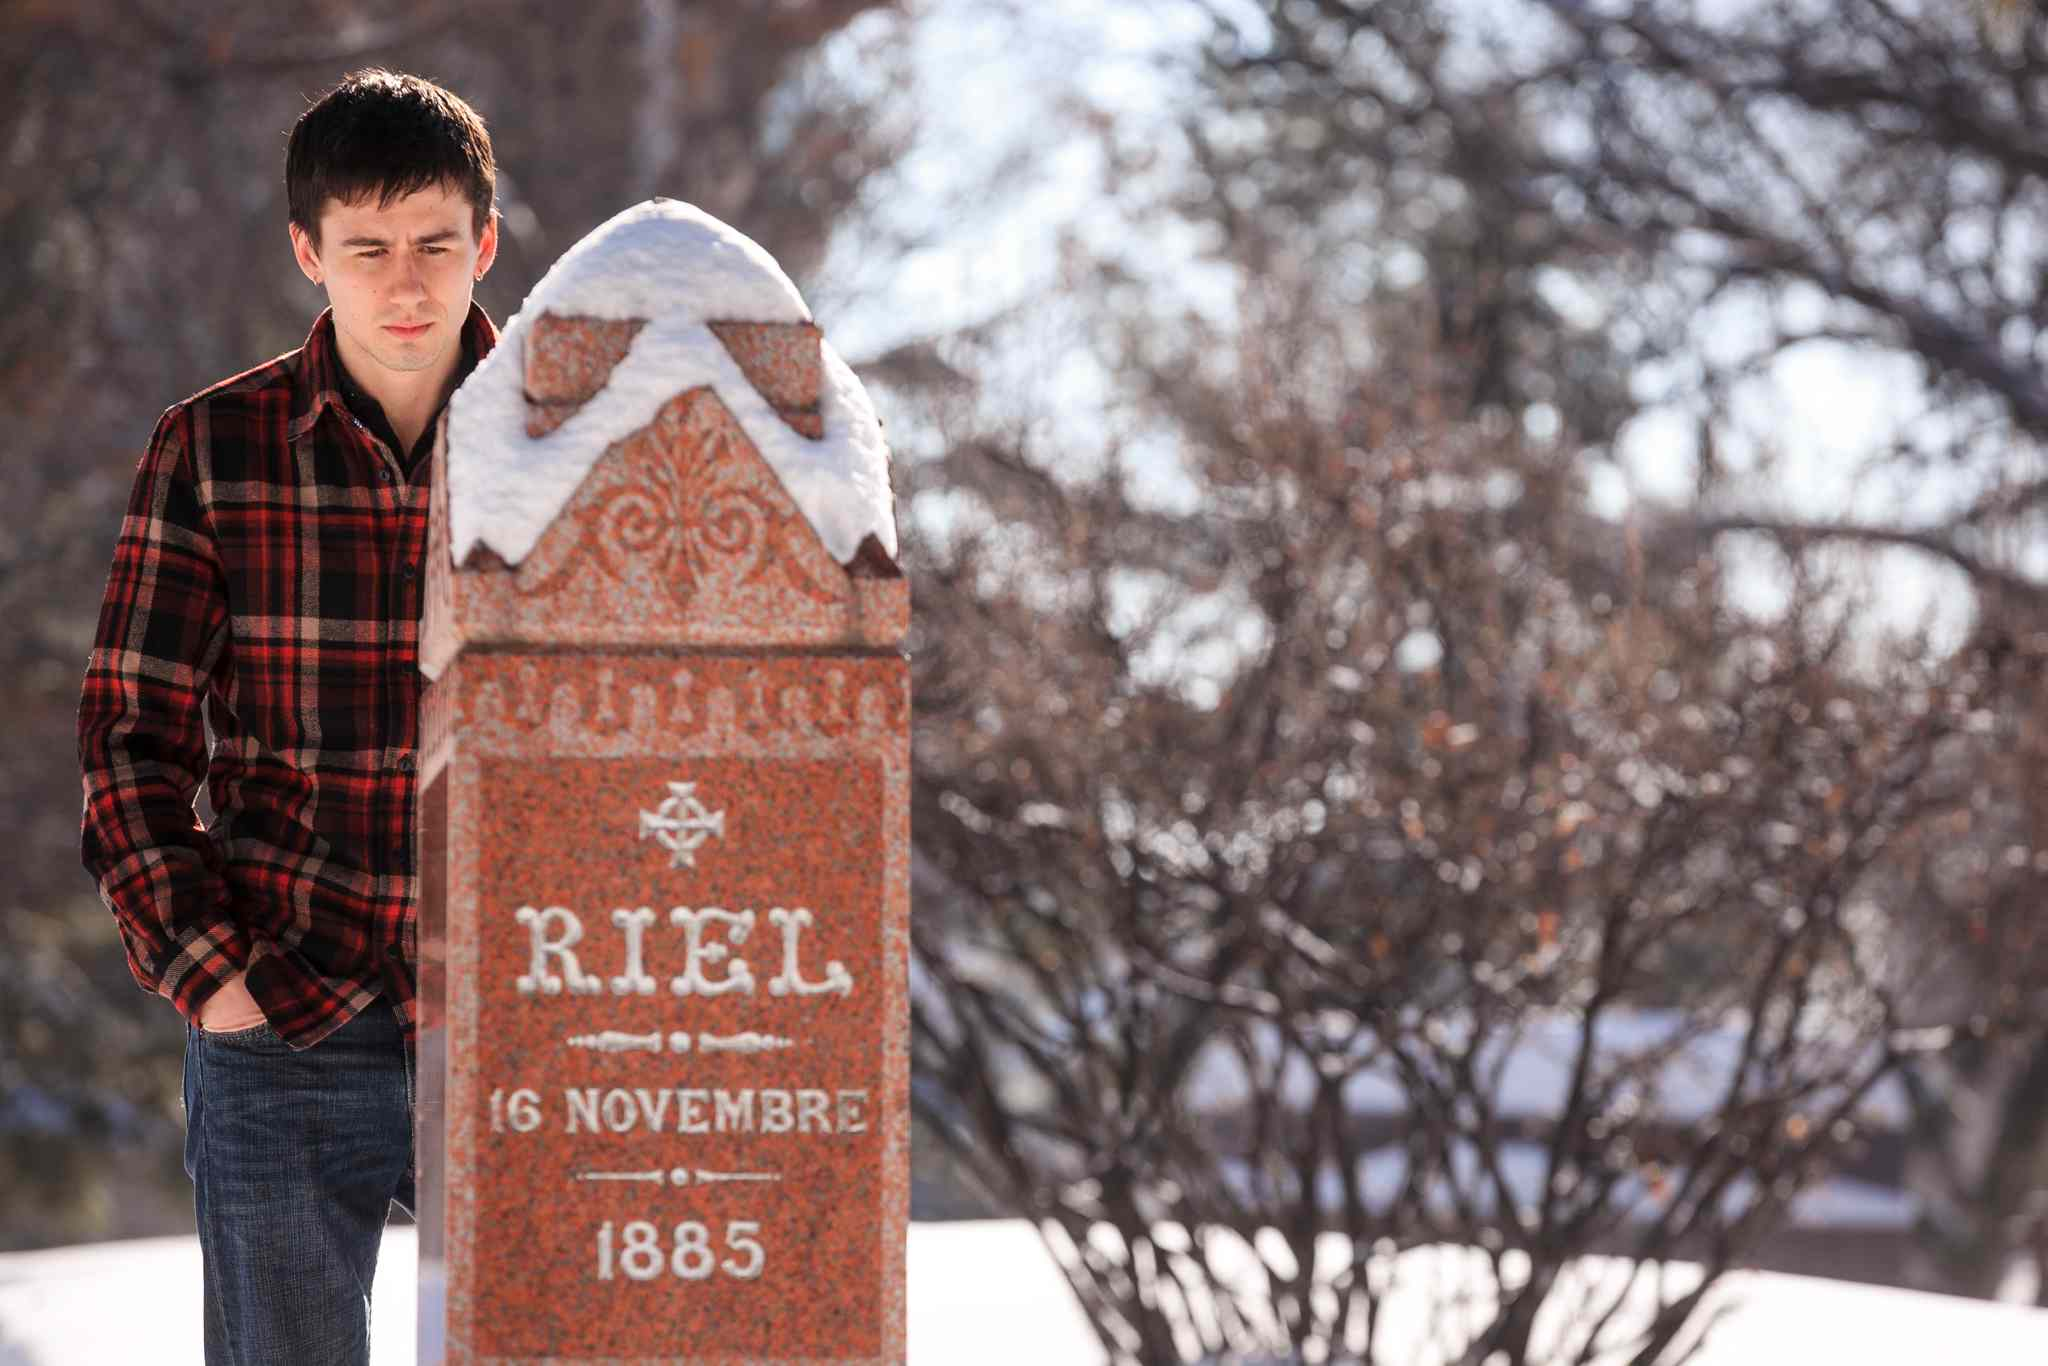 Ben Linnick quietly reflects at Louis Riel's marker at the St. Boniface Cathedral on Louis Riel day. Linnick said as a young Metis growing up in Flin Flon, Riel was a role model, and even more so now that he lives in Winnipeg.